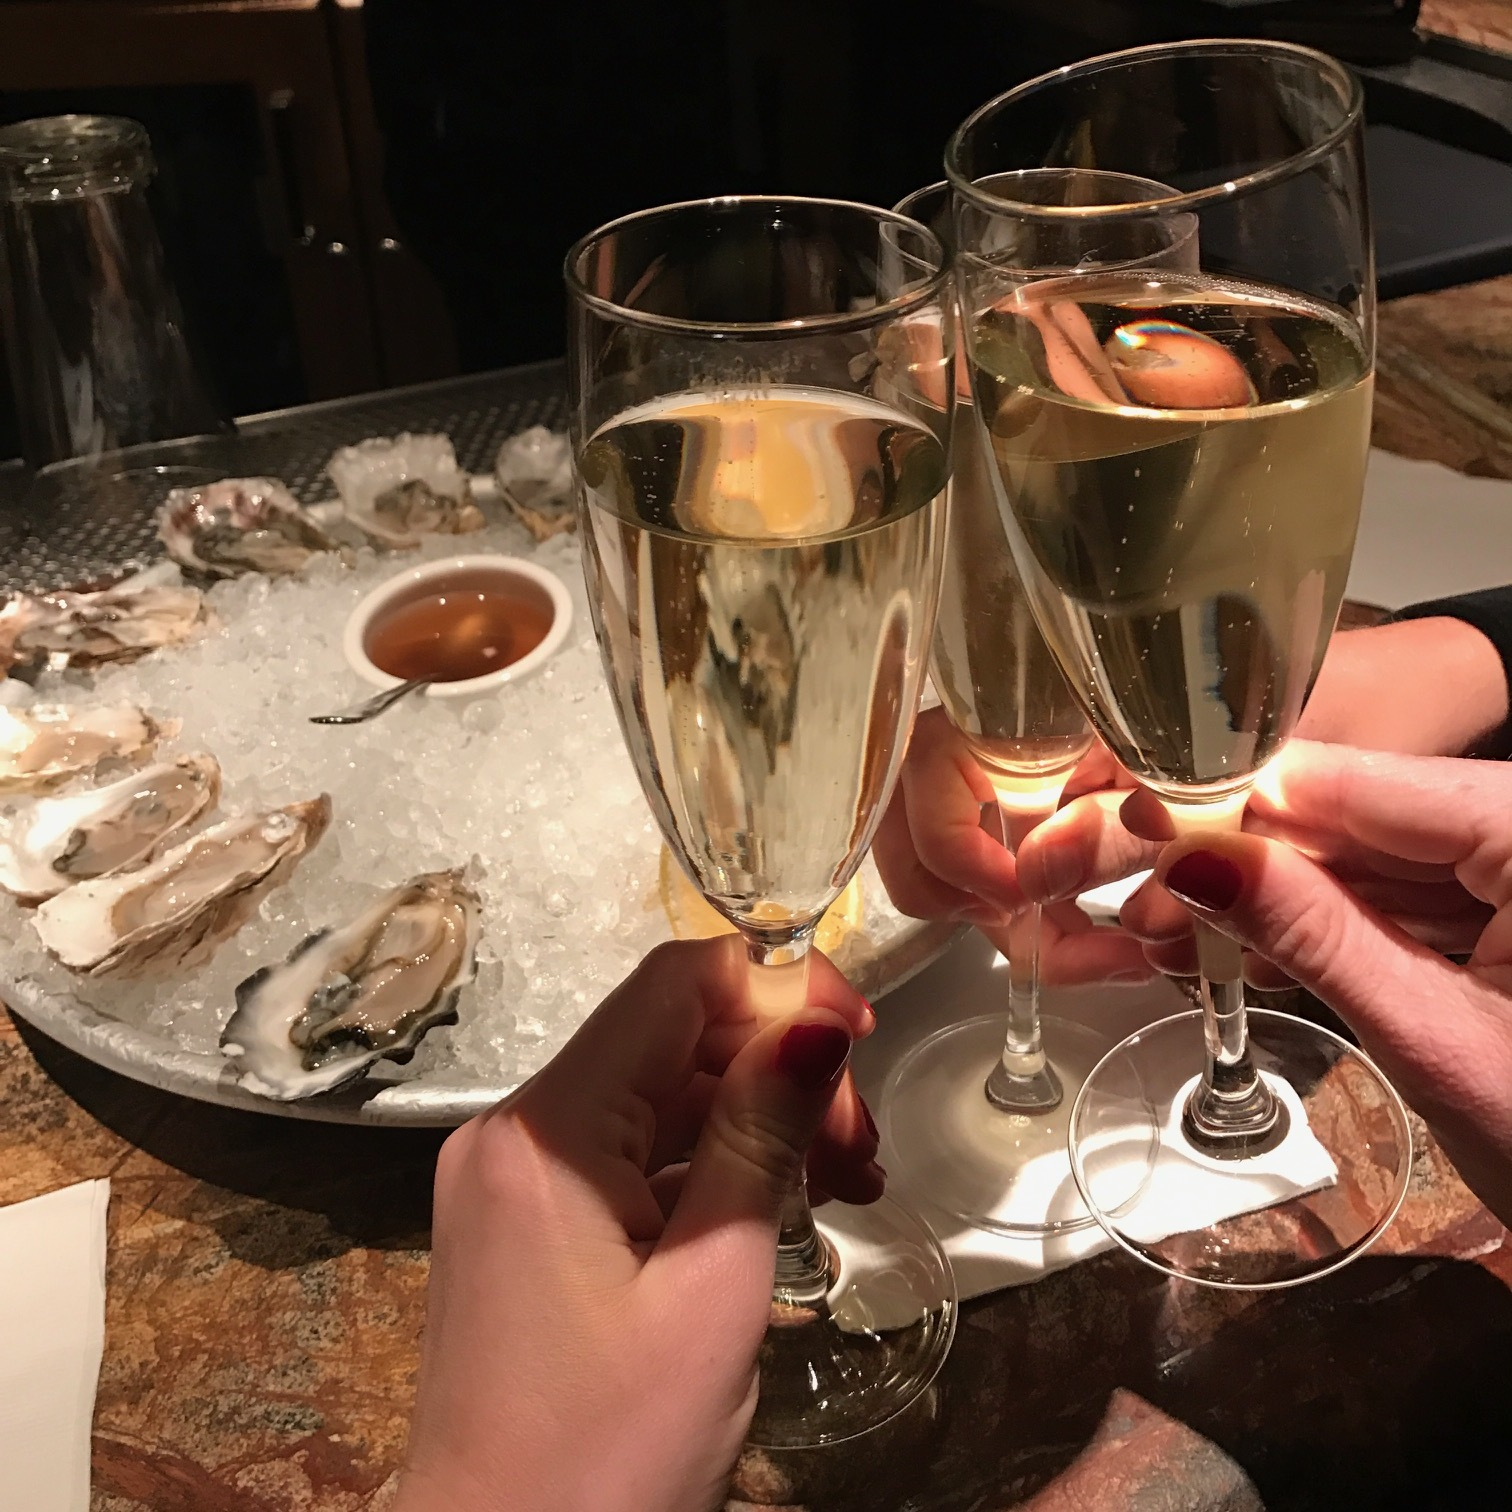 Happy Hour at Farallon...cheers!